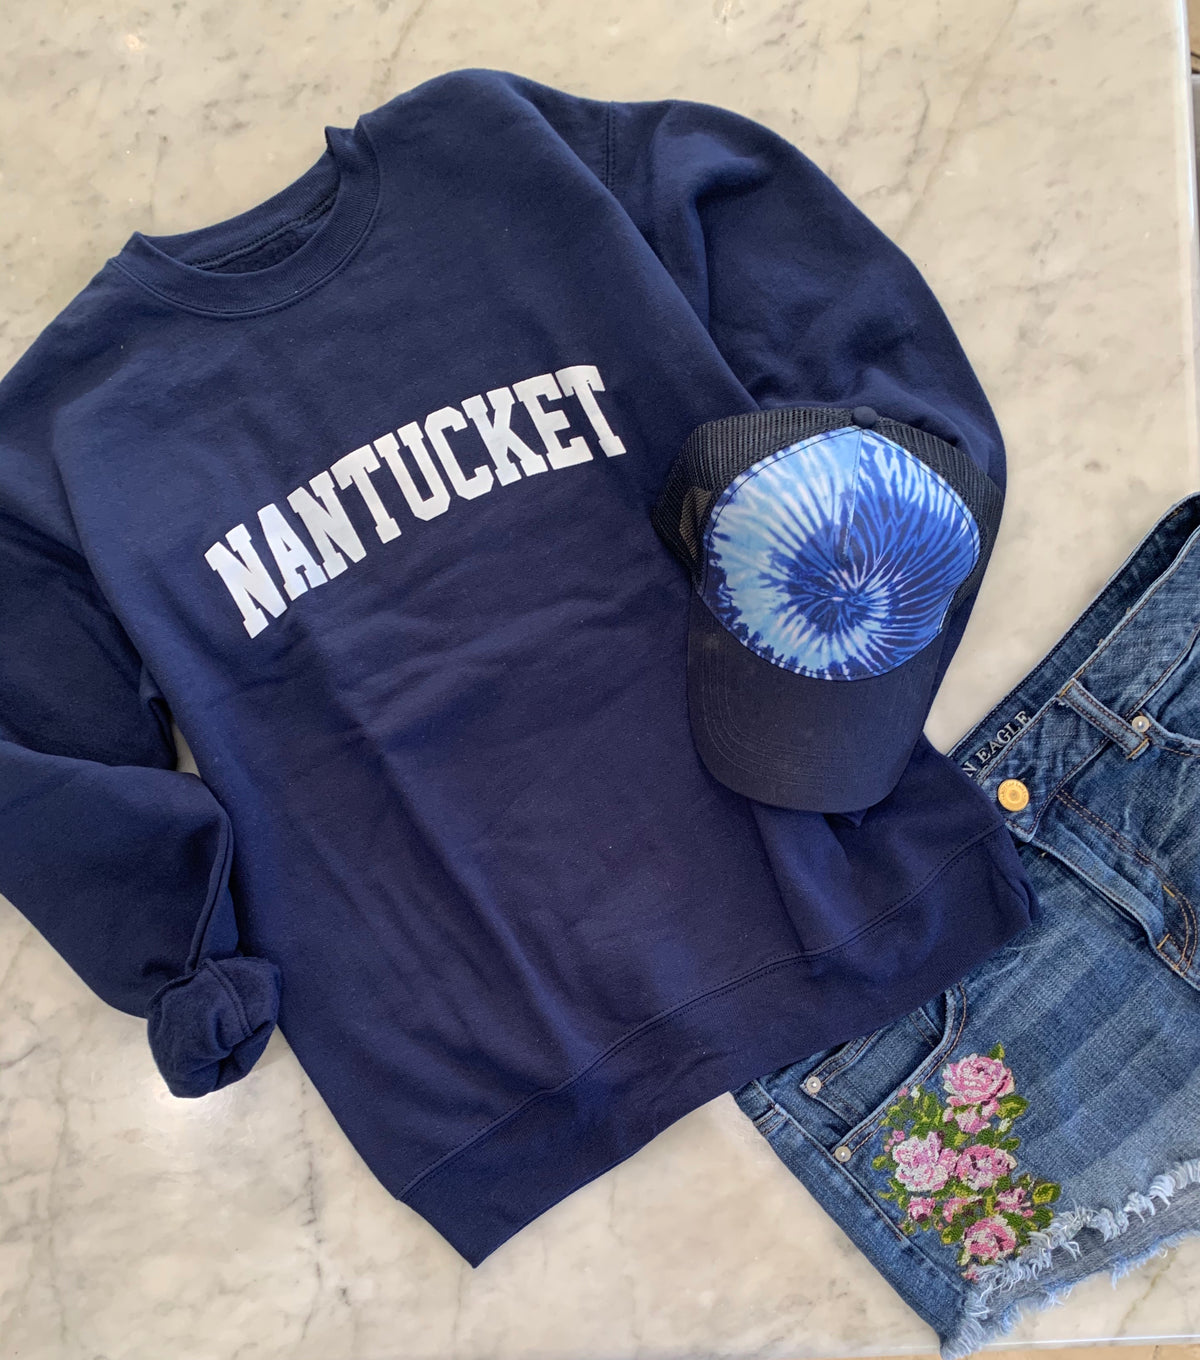 Nantucket Sweatshirt , Cape Cod Prep Collegiate Style Pullover, Destination Shirt